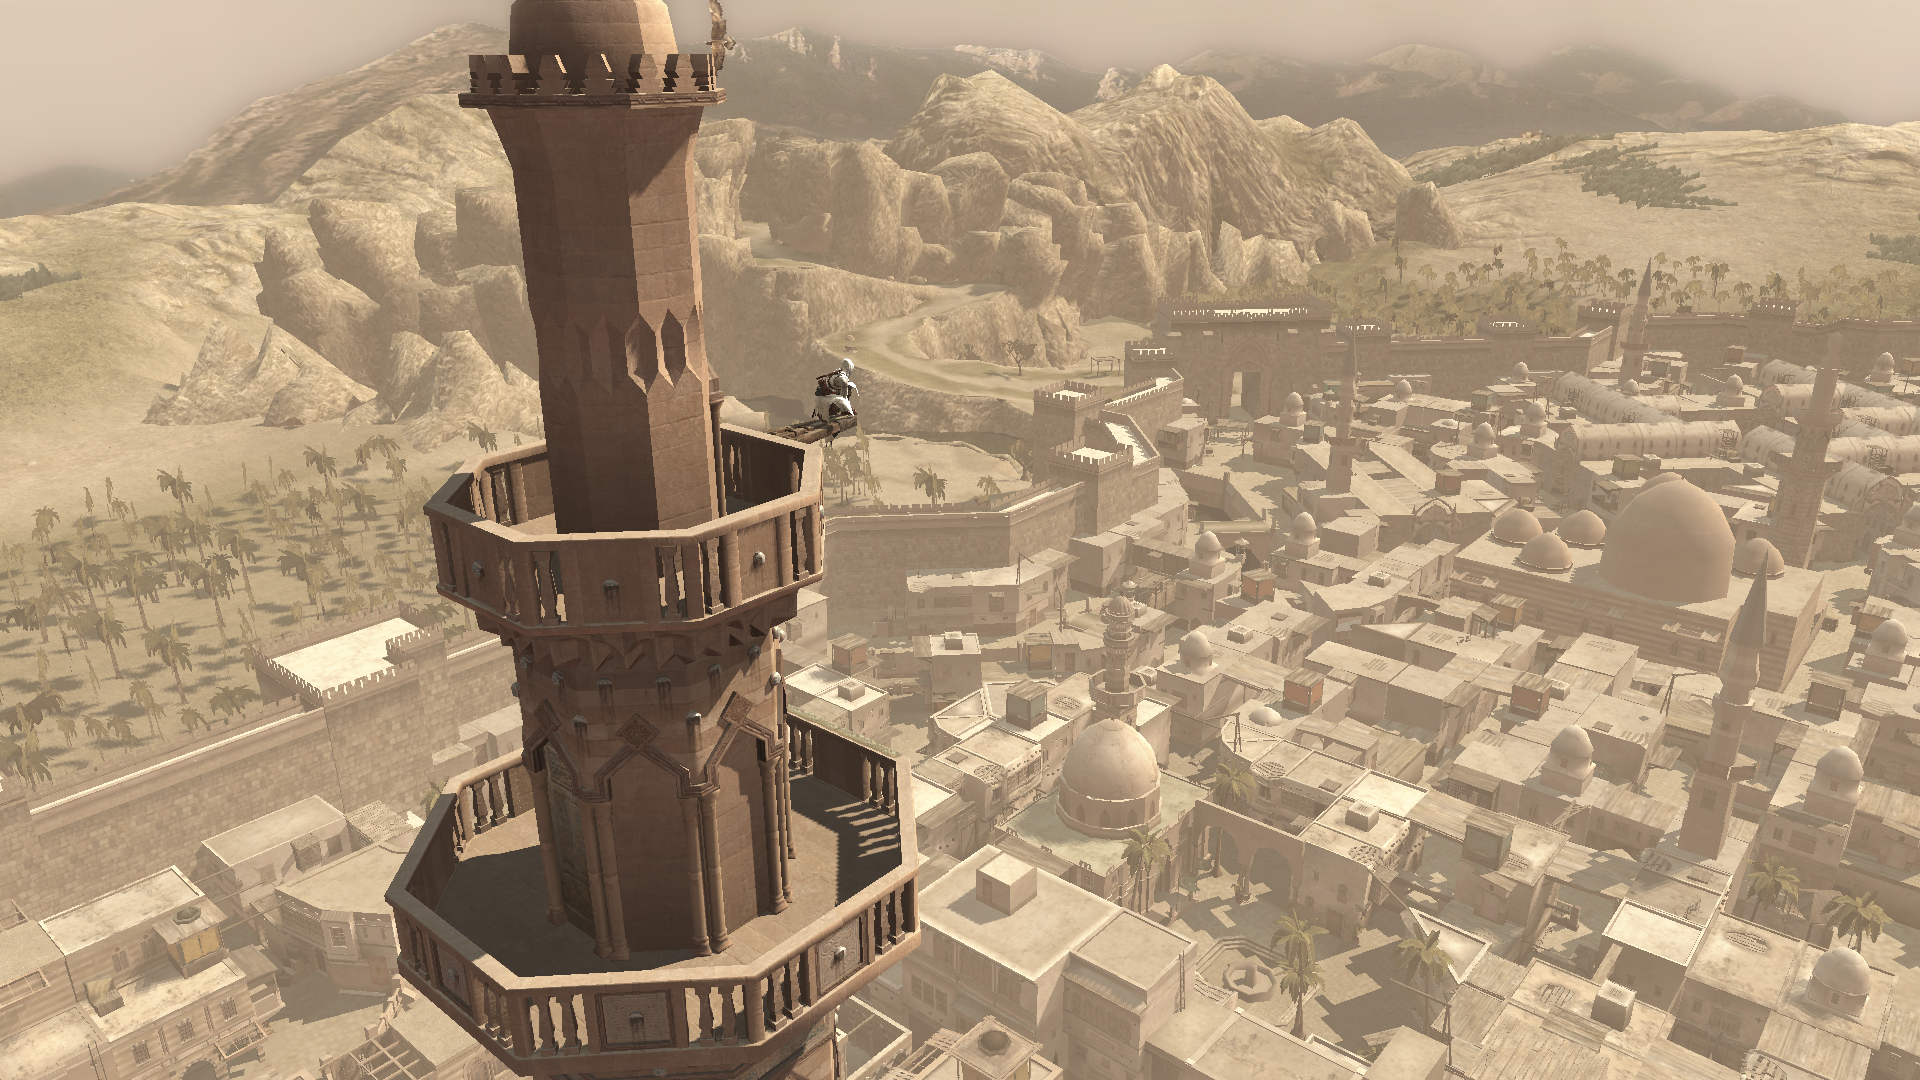 AC1 Altair Viewpoint Damascus - Assassin's Creed and I: Or How I learned to stop worrying and love the Creed